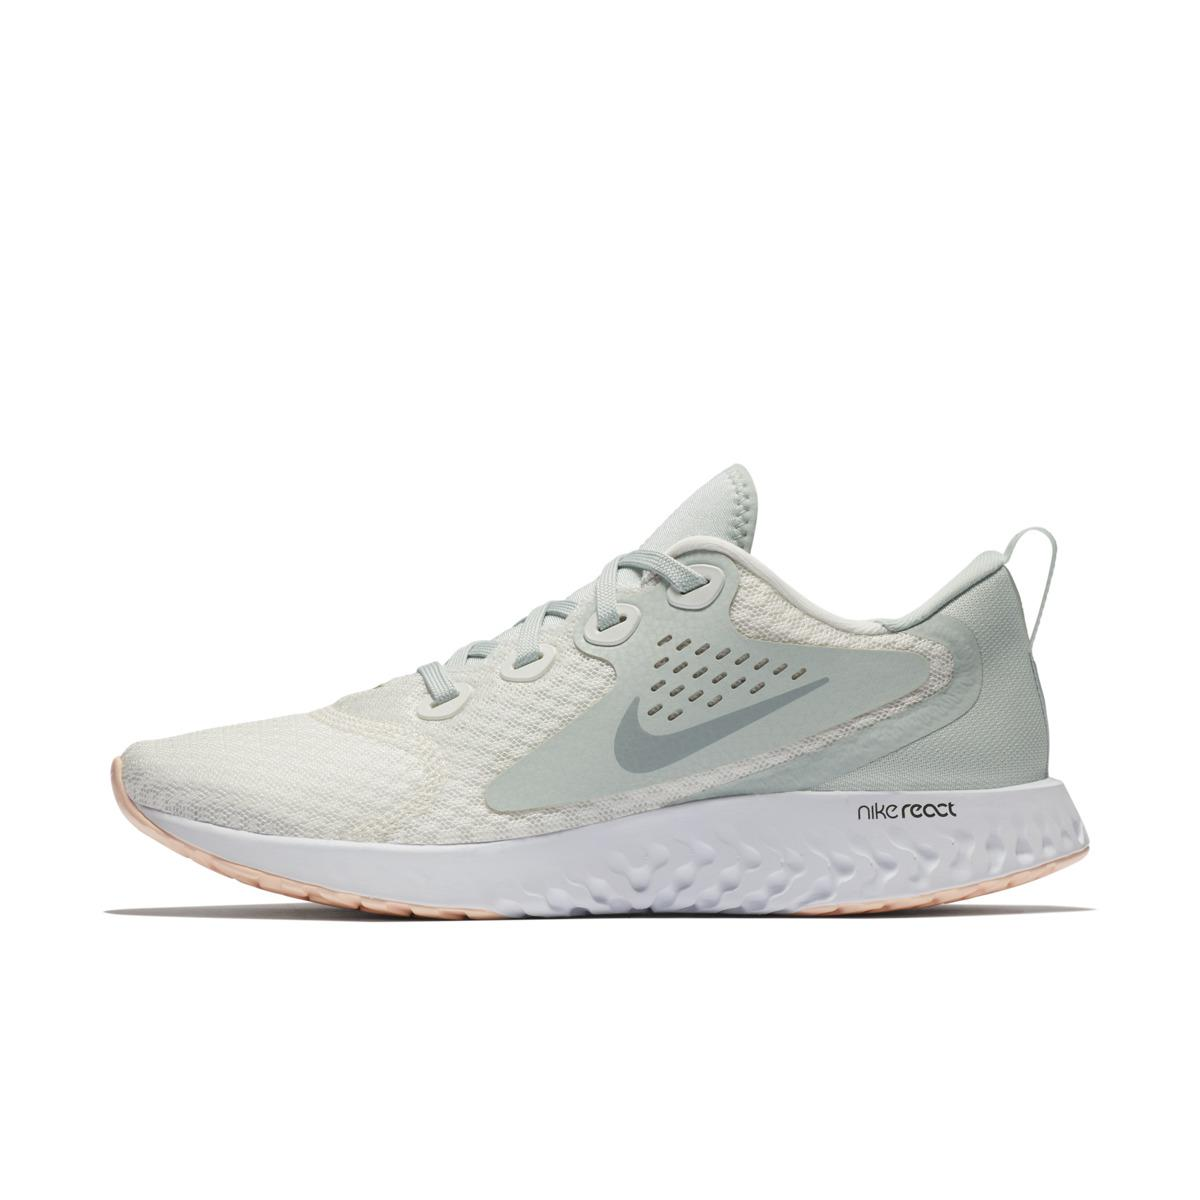 062596a0bef2 Lyst - Nike Rebel React Running Shoes in White